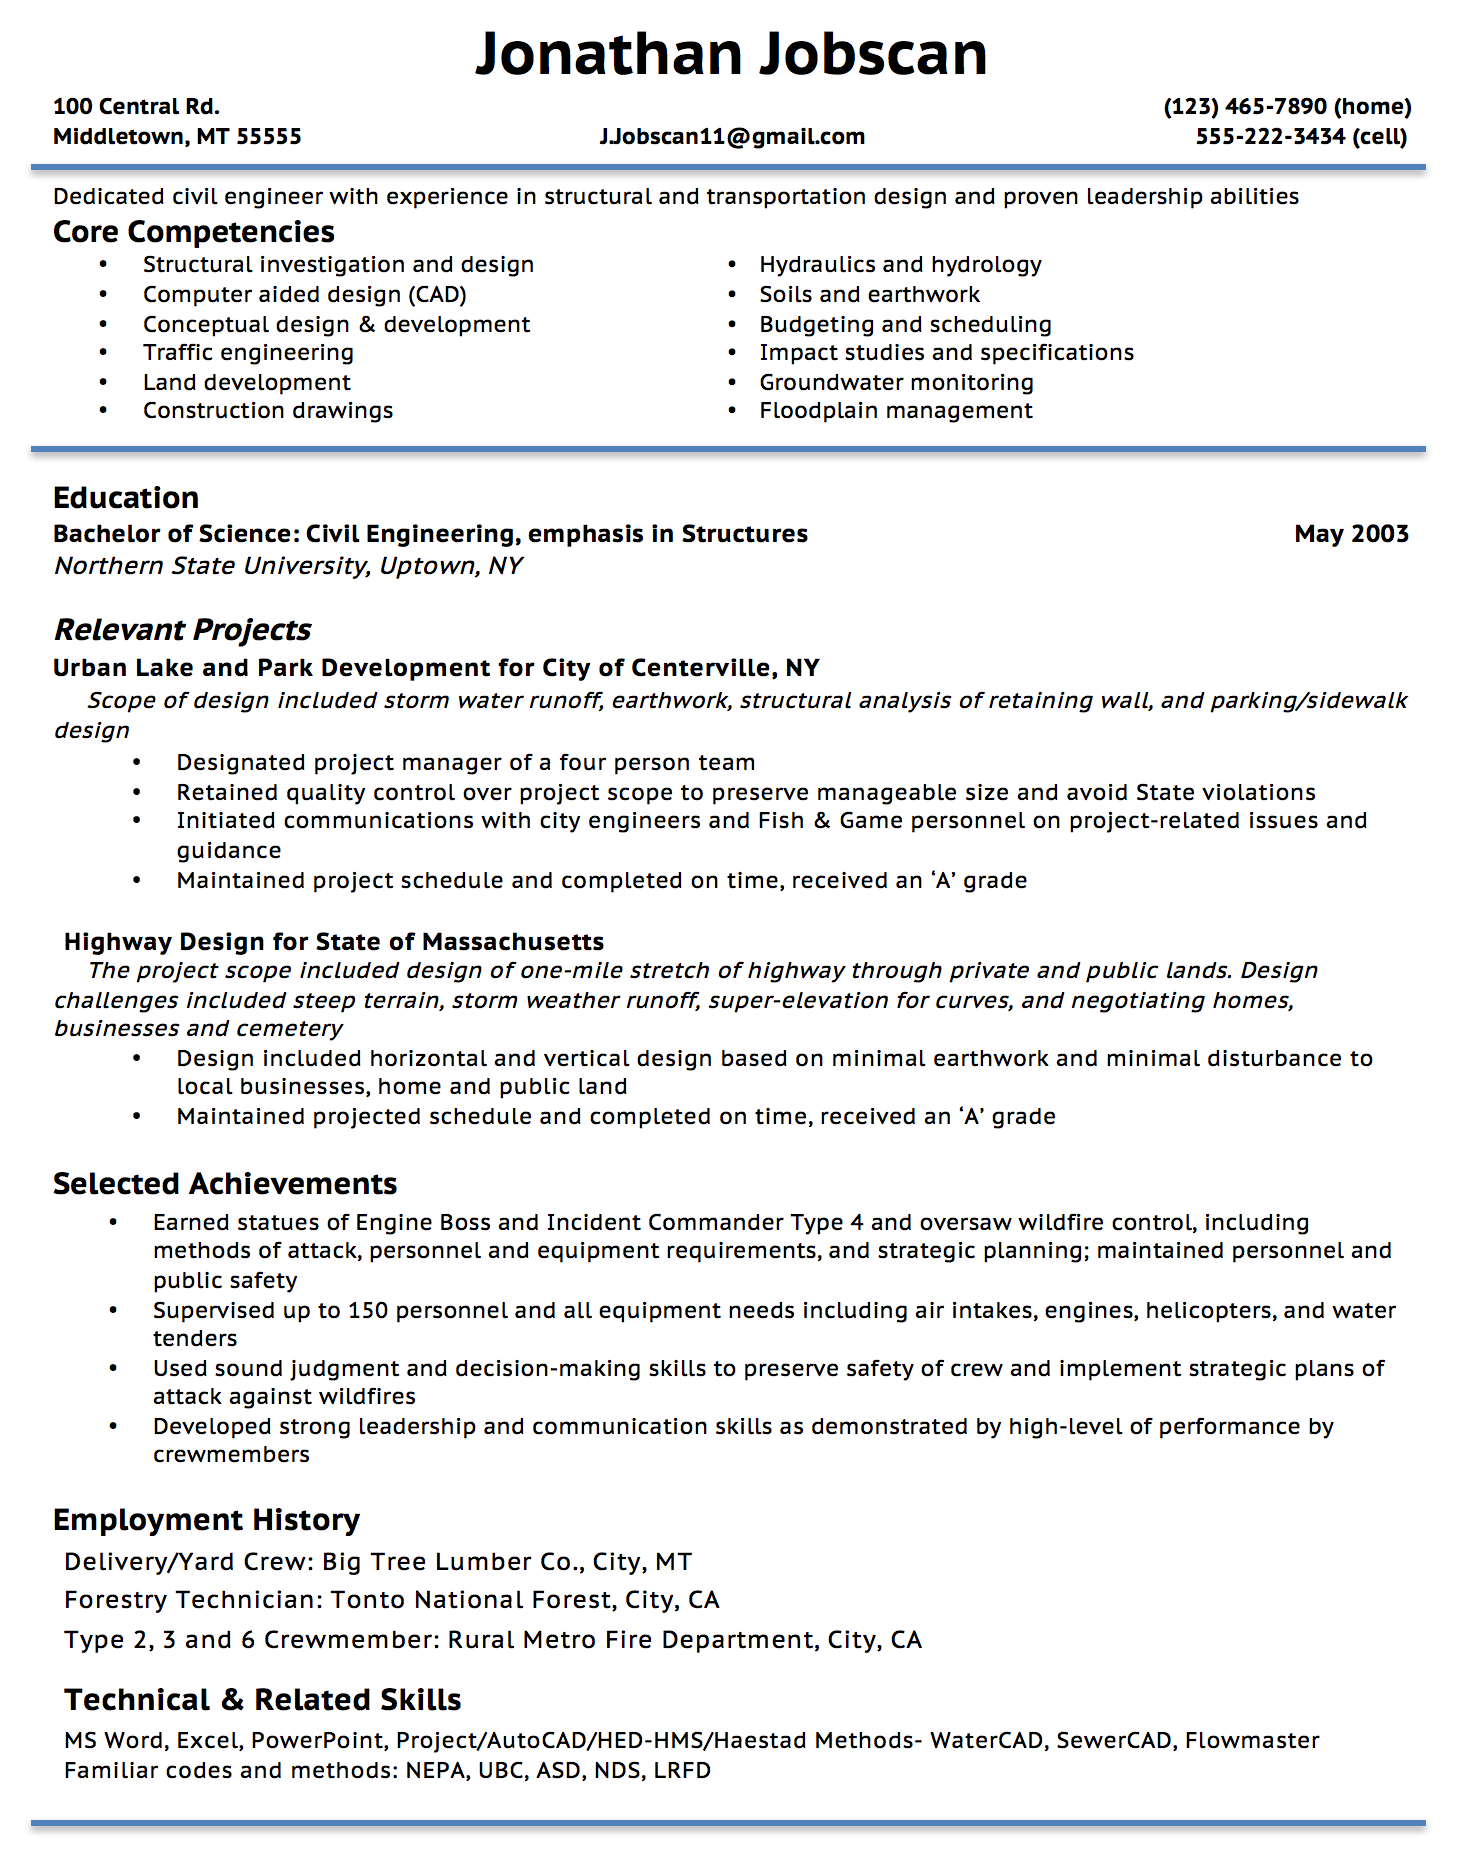 Opposenewapstandardsus  Nice Resume Writing Guide  Jobscan With Foxy Example Of A Functional Resume Format With Easy On The Eye Post Office Resume Also Berkeley Resume In Addition Application Developer Resume And Sales Analyst Resume As Well As Recruiter Resume Example Additionally Linkedin Resume Template From Jobscanco With Opposenewapstandardsus  Foxy Resume Writing Guide  Jobscan With Easy On The Eye Example Of A Functional Resume Format And Nice Post Office Resume Also Berkeley Resume In Addition Application Developer Resume From Jobscanco